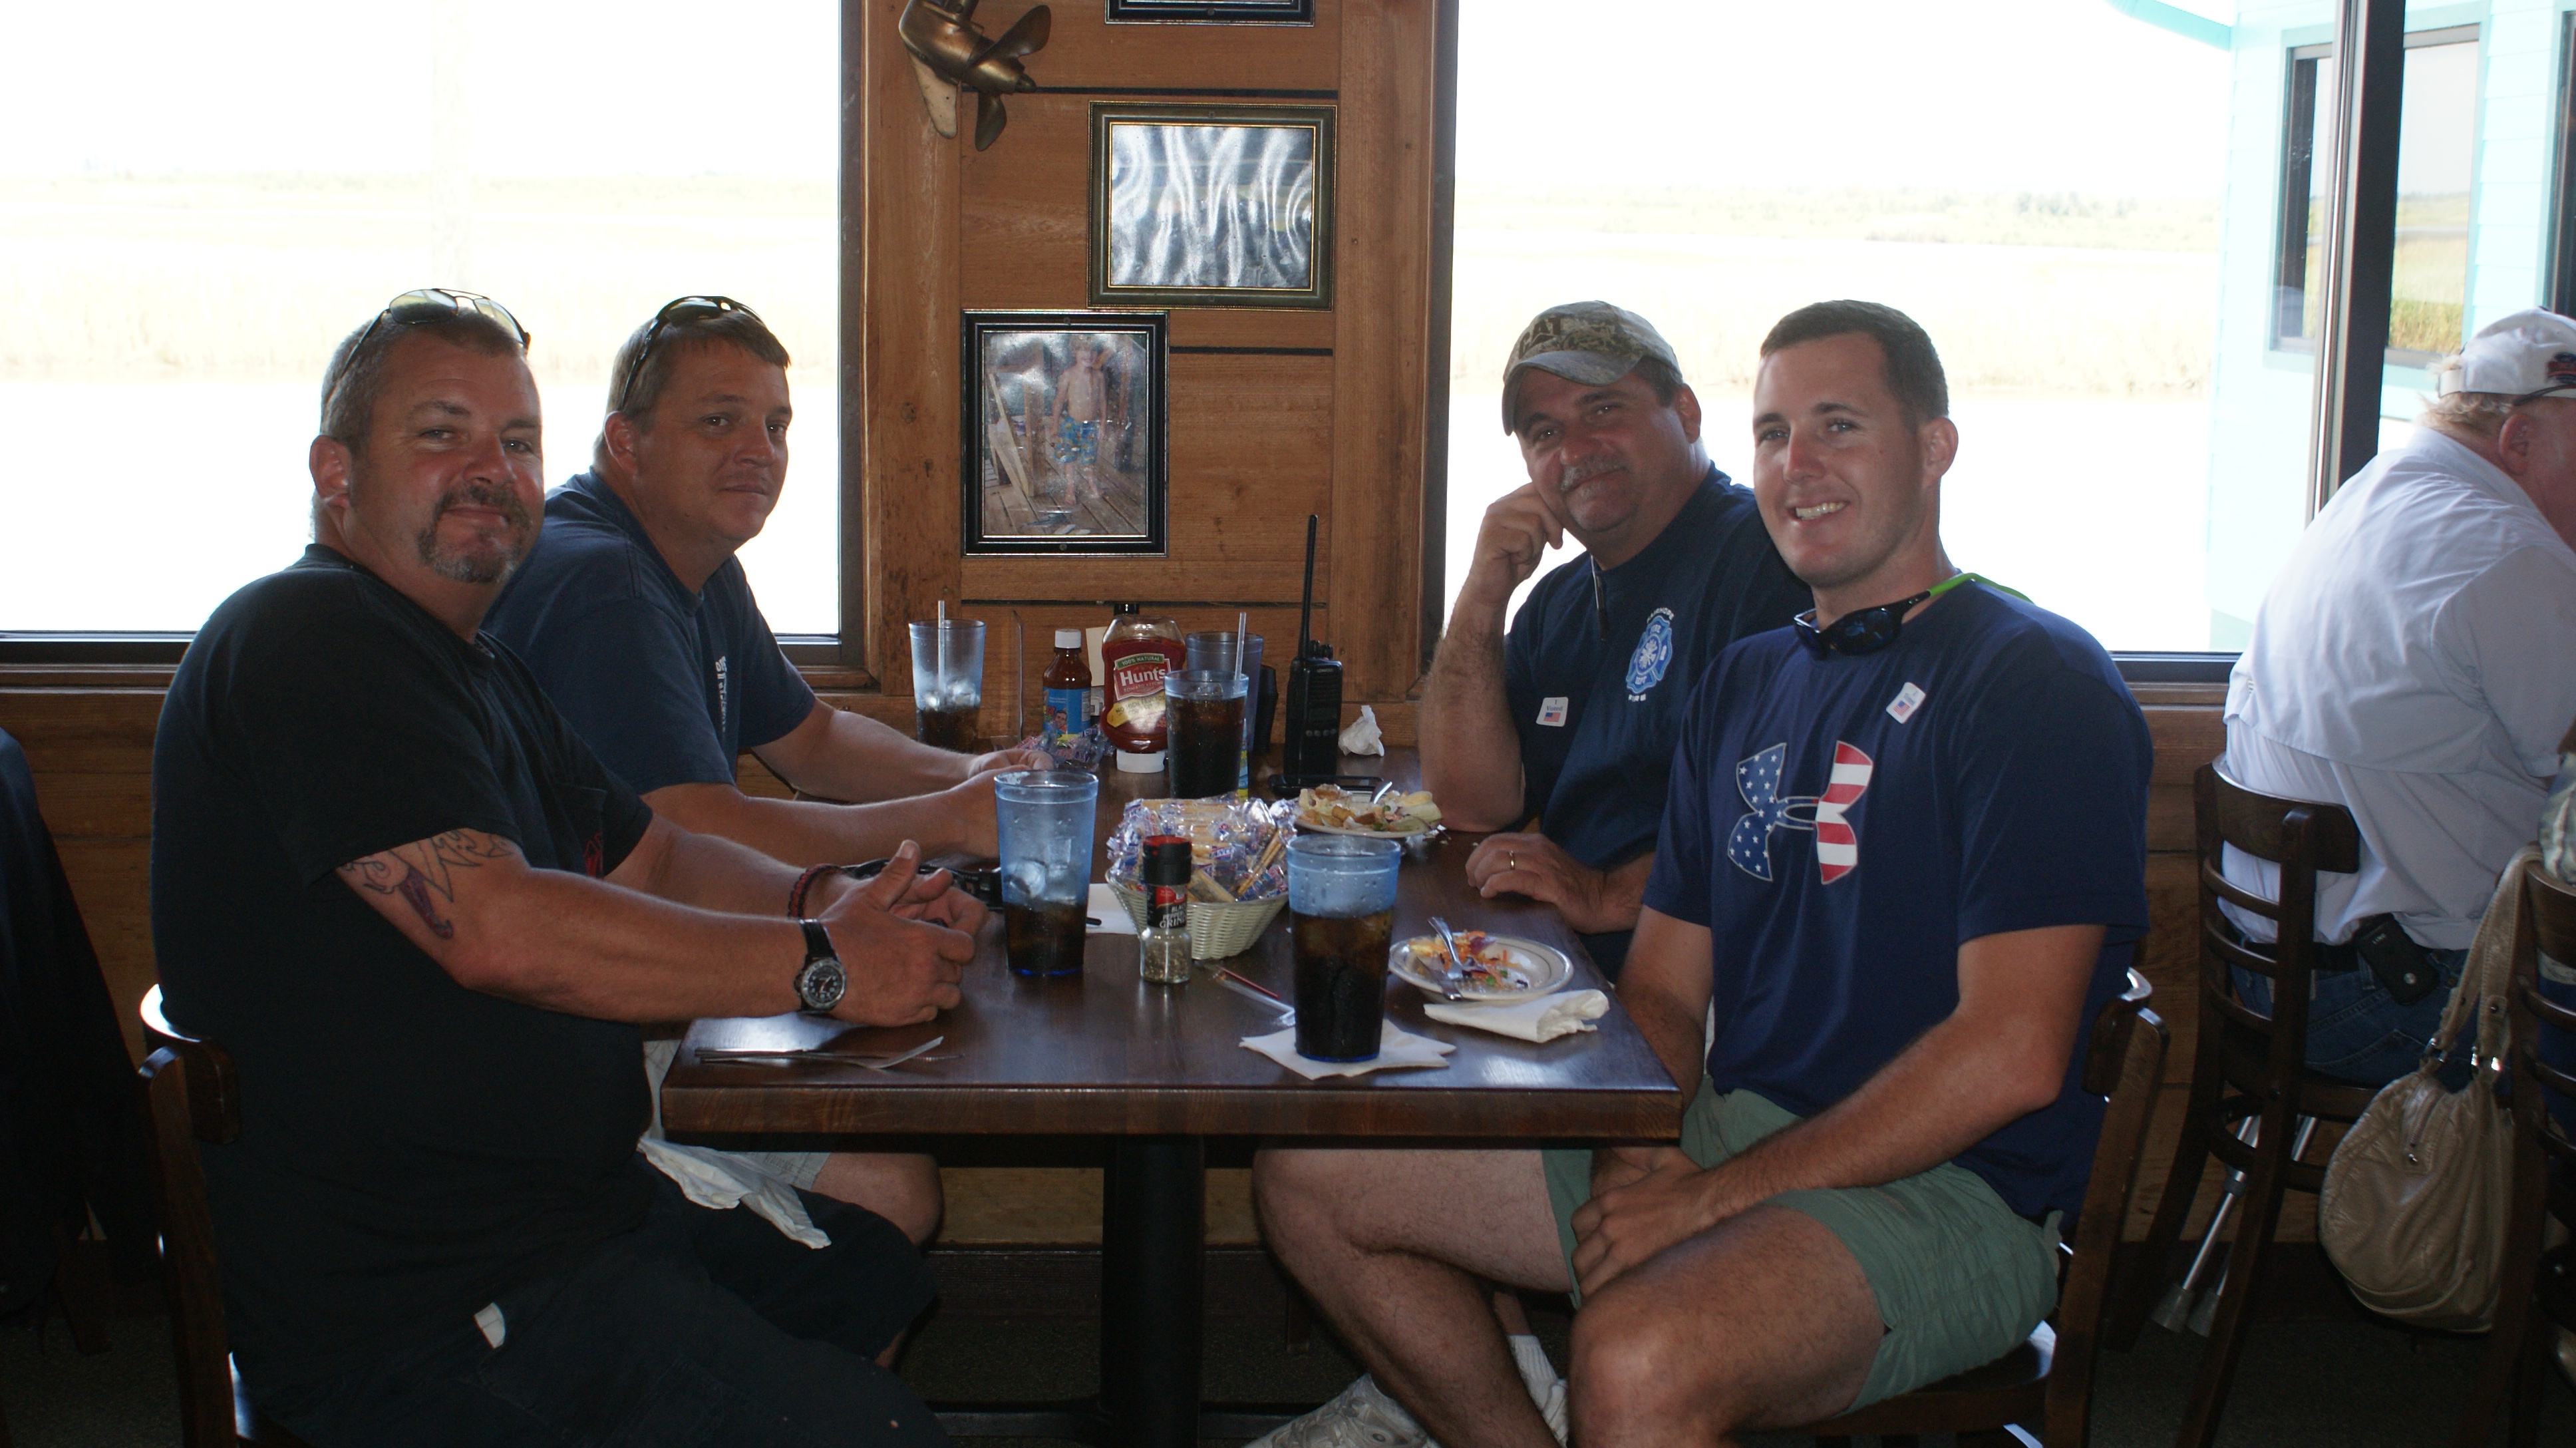 Servicemen enjoying lunch at Original Oyster House's never forget lunch